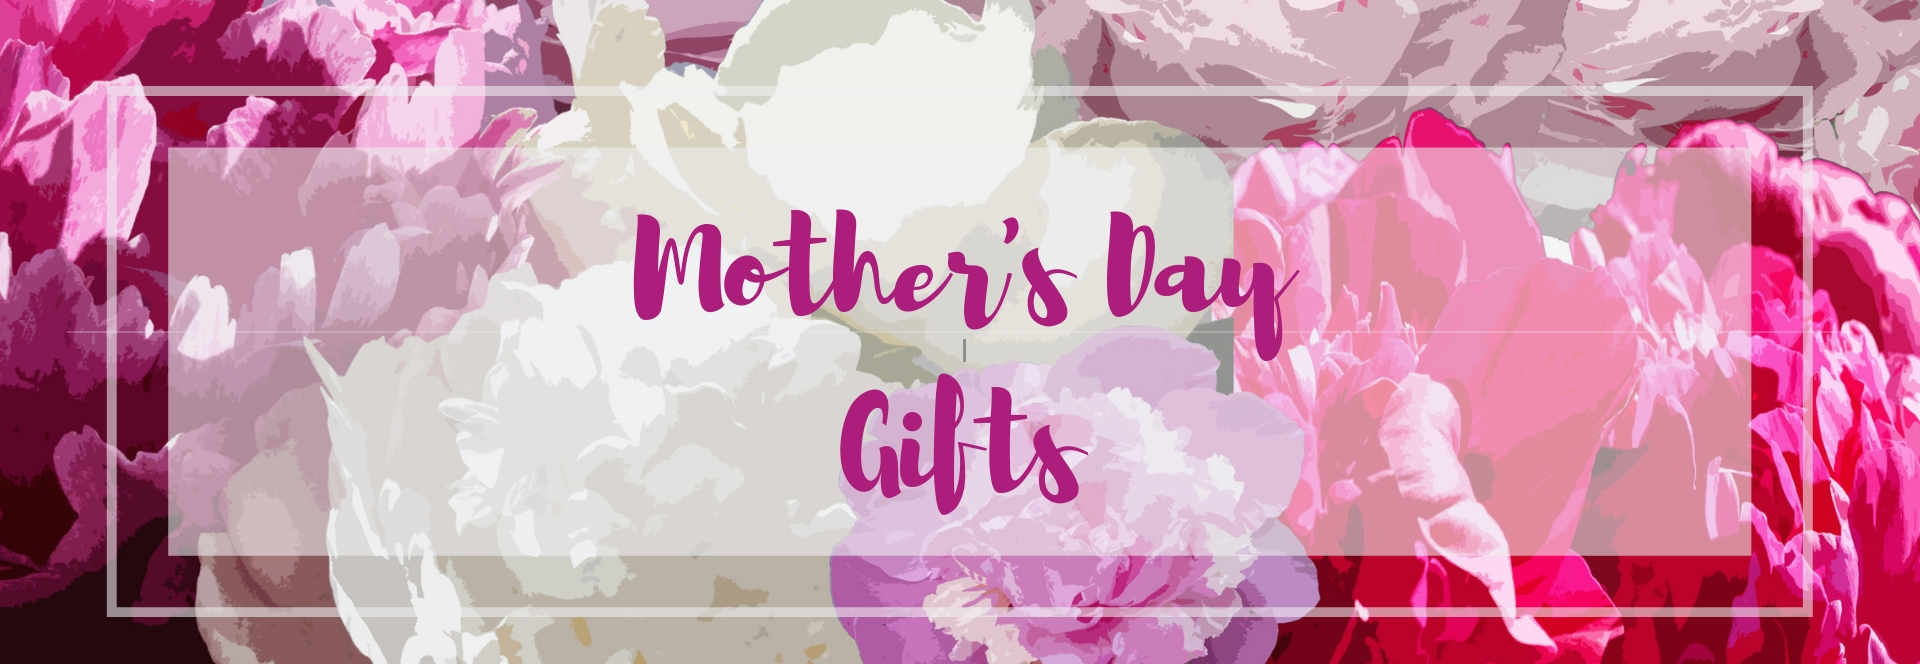 What to buy for mothers day